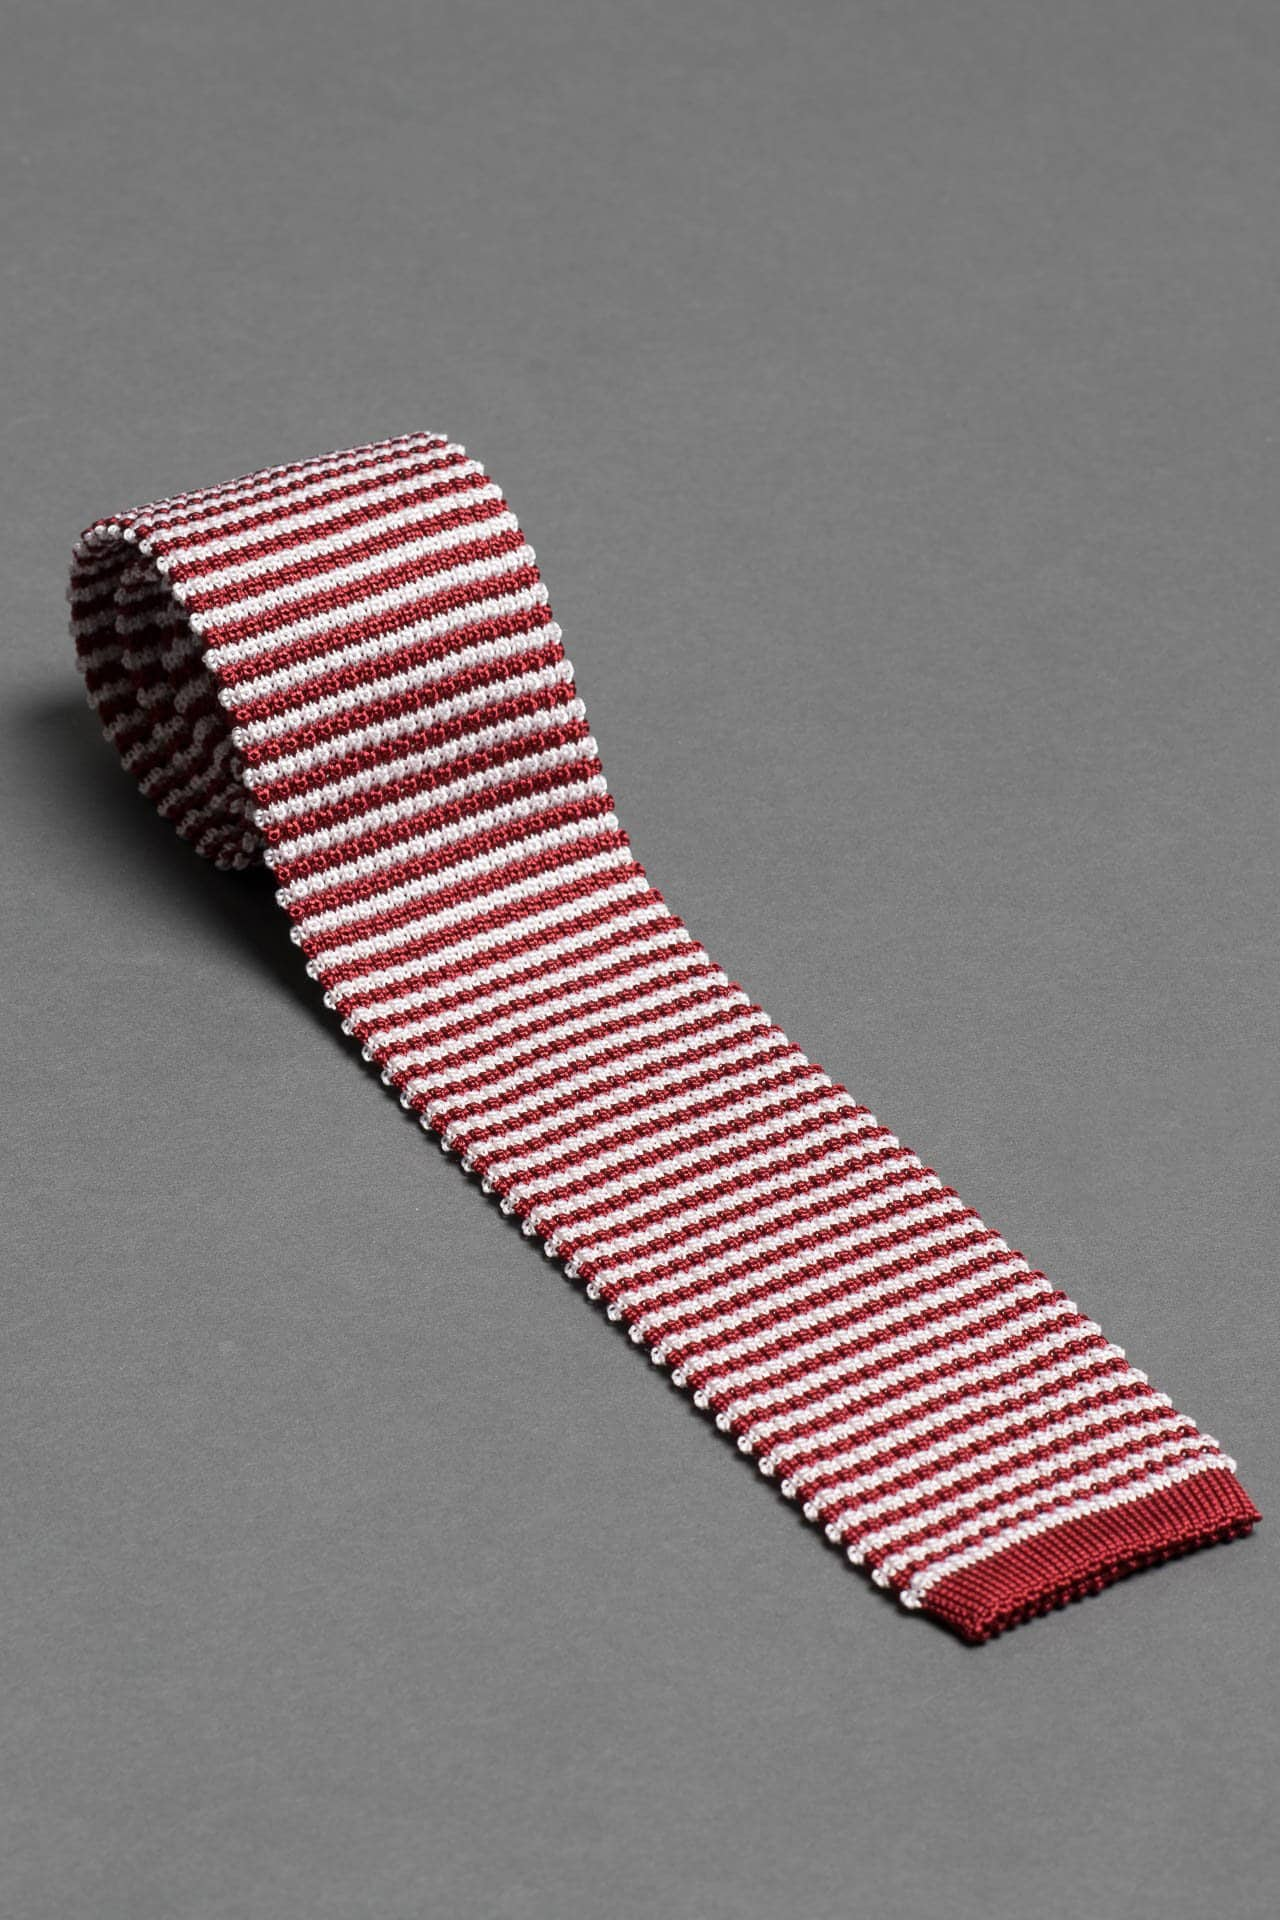 red-white-stripe-silk-knitted-tie-with-square-tip-made-in-italy